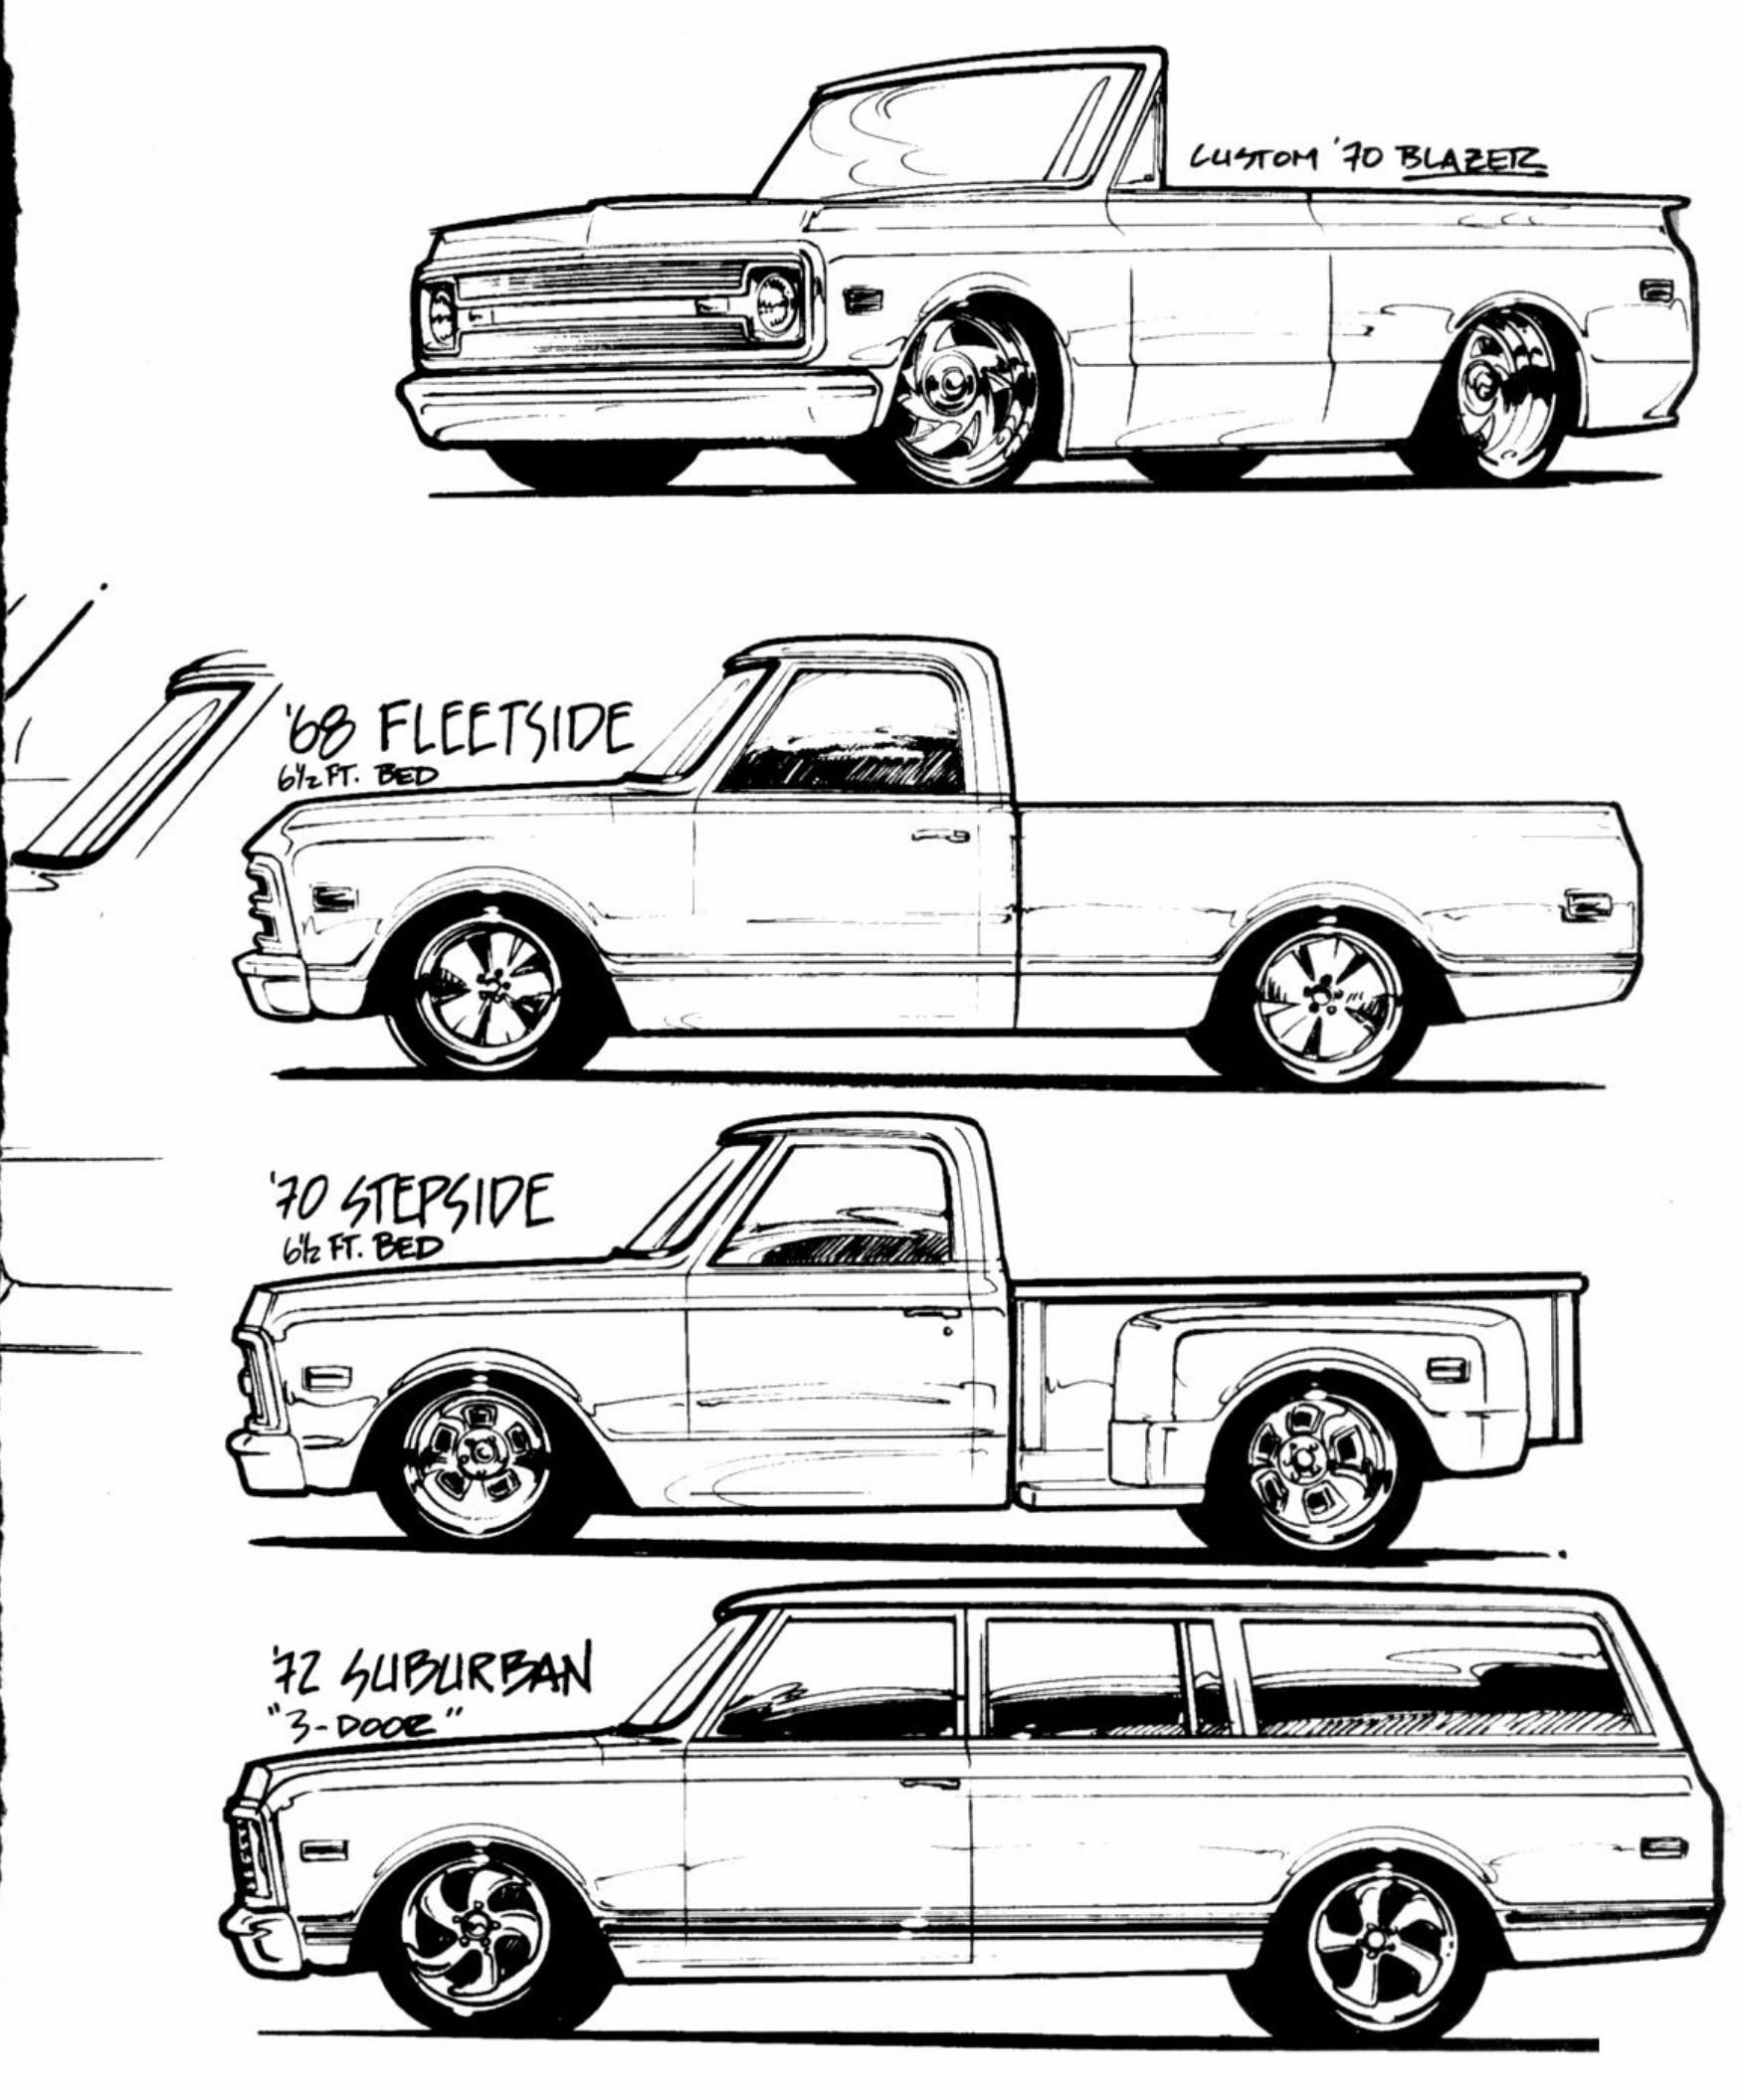 1970 chevy truck clipart picture free stock Cool sketch | 67-72 | Chevy vehicles, 67 72 chevy truck, Chevy trucks picture free stock